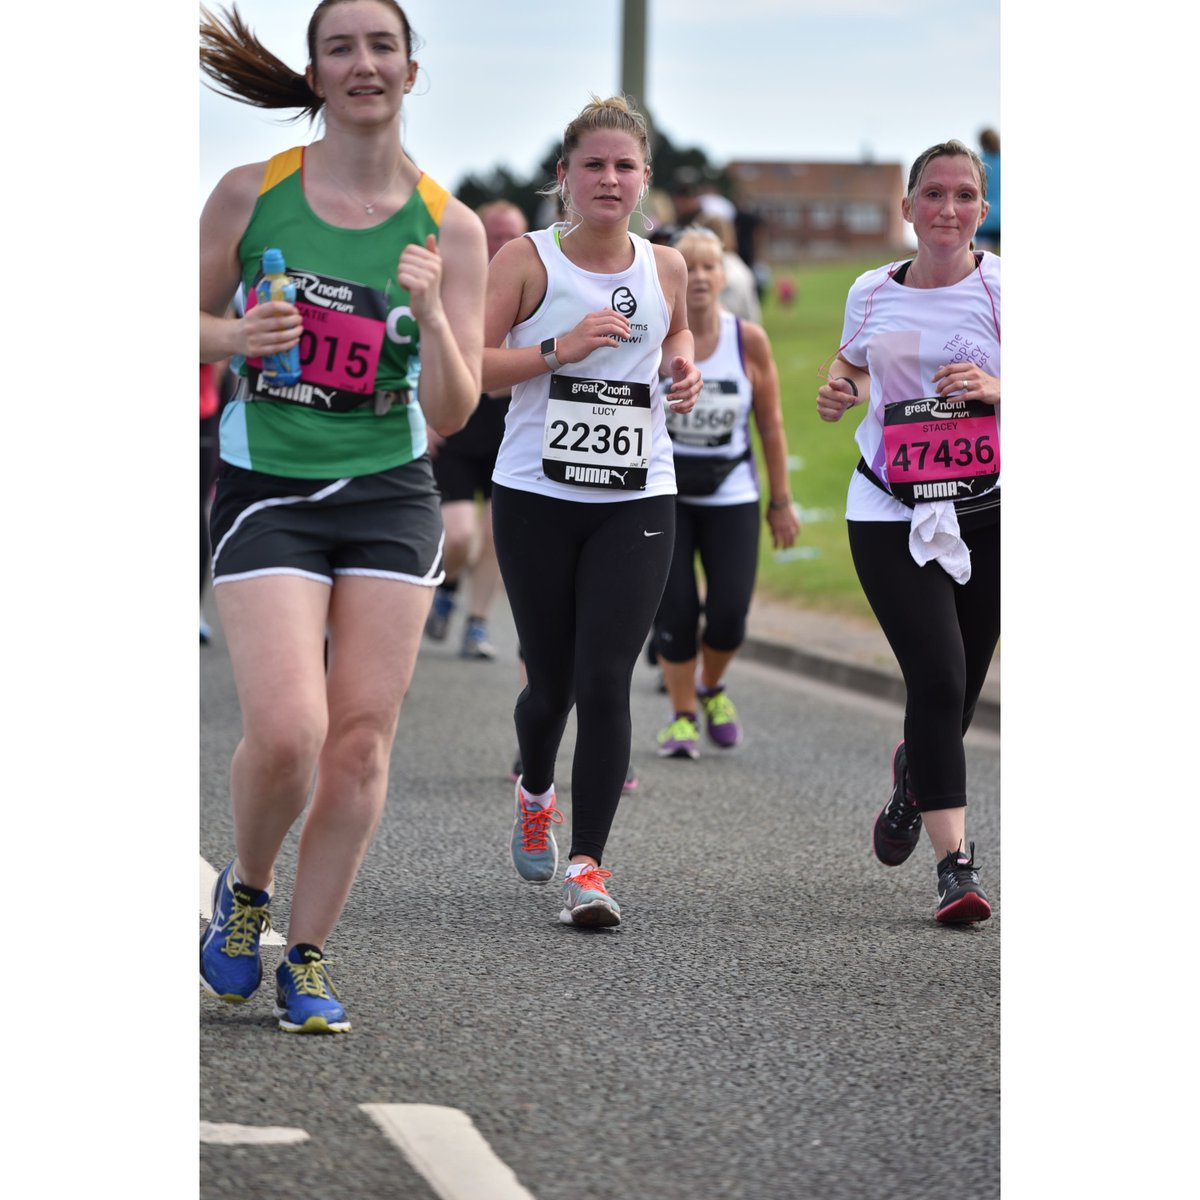 The #Greatnorthrun  sees thousands of runners take on the #halfmarathon challenge every year.  We have 6 places available so please get in touch if you'd like to support us and run the half marathon!  https:// bit.ly/2soD1XF       #BeYourGreatest #running  #runningchallenge #malawi<br>http://pic.twitter.com/4i9zMTorZf